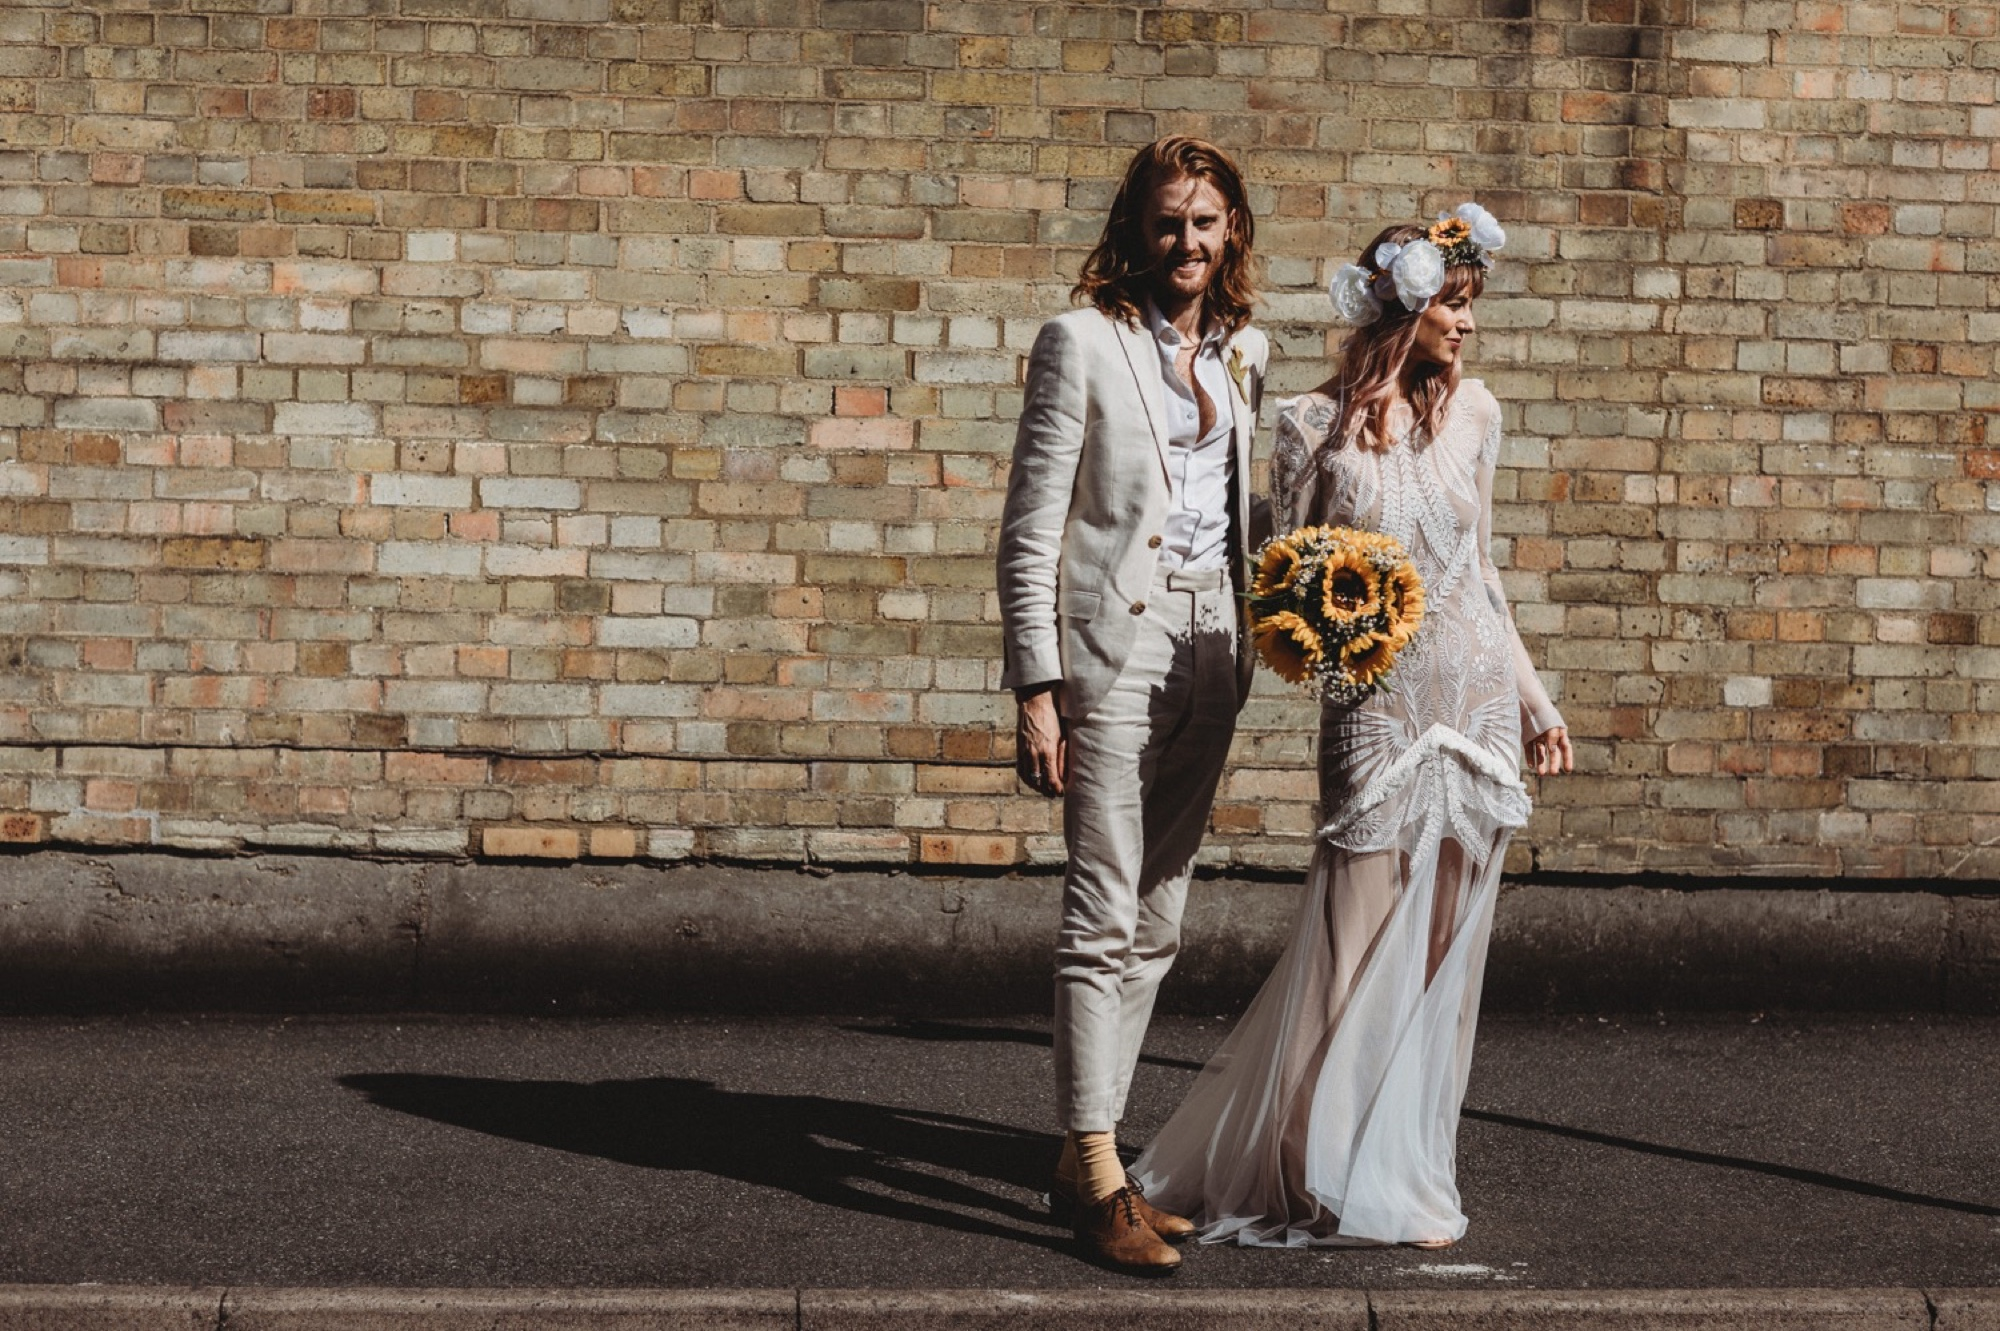 hackney London wedding ceremony exit by zakas photography